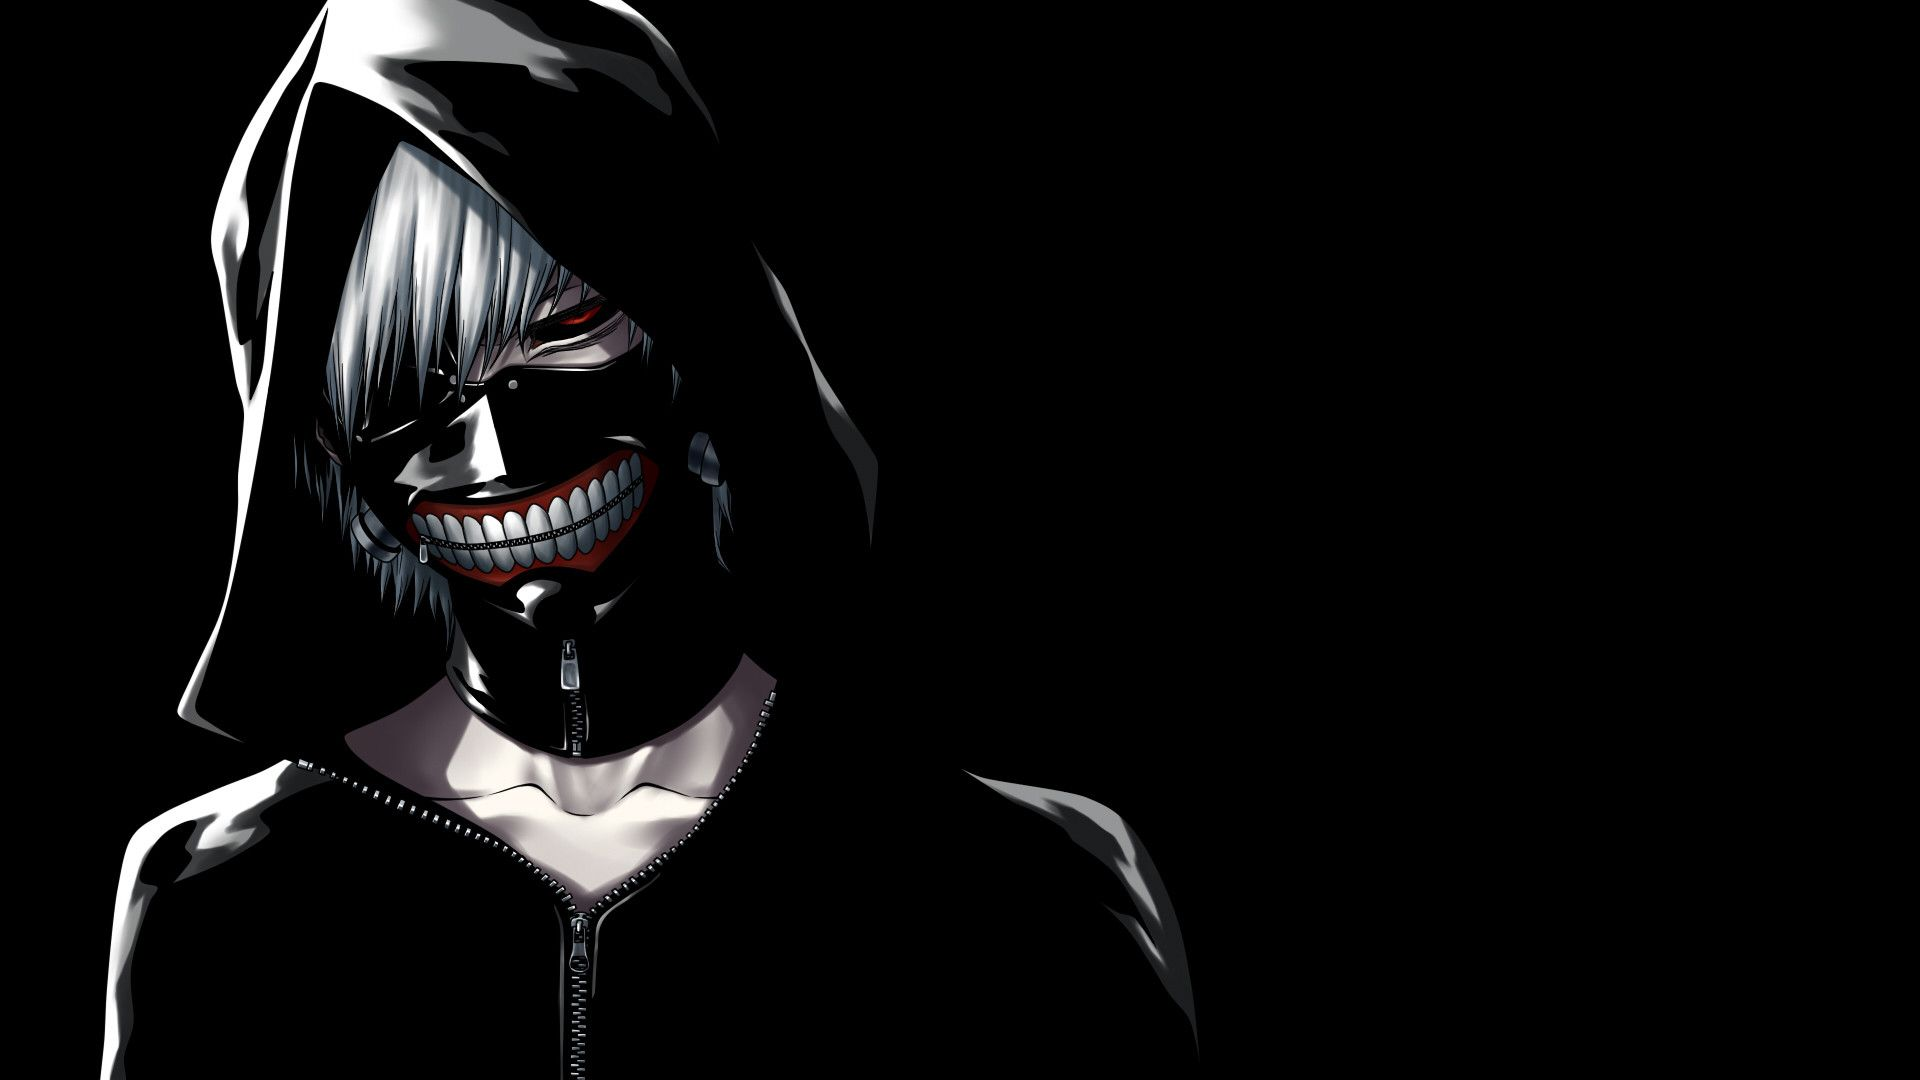 Tokyo Anime Ghoul Wallpapers